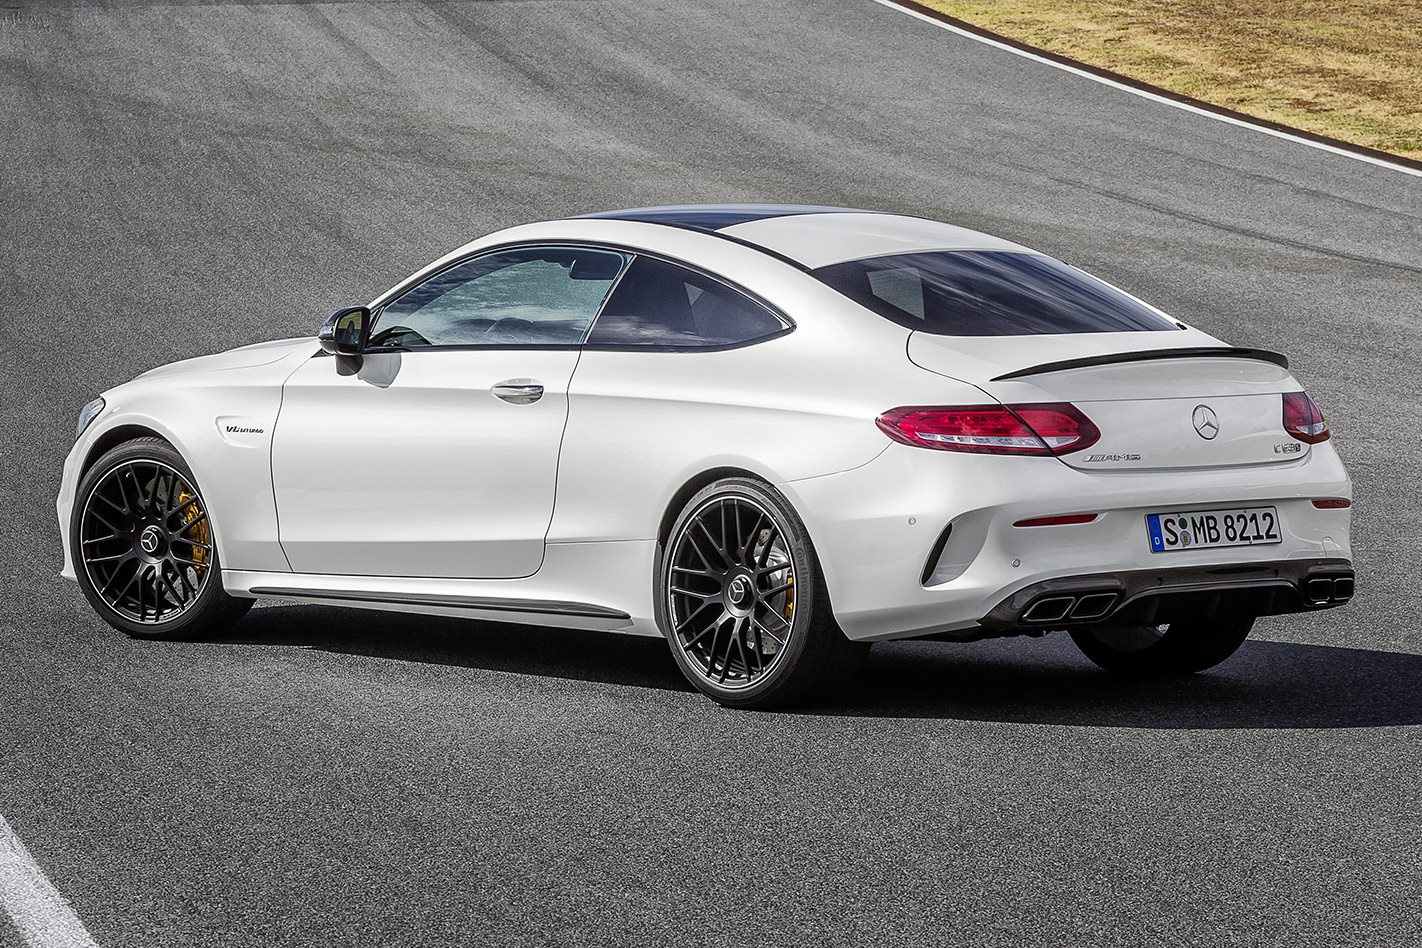 2017 Merc AMG C63 S Coupe rear